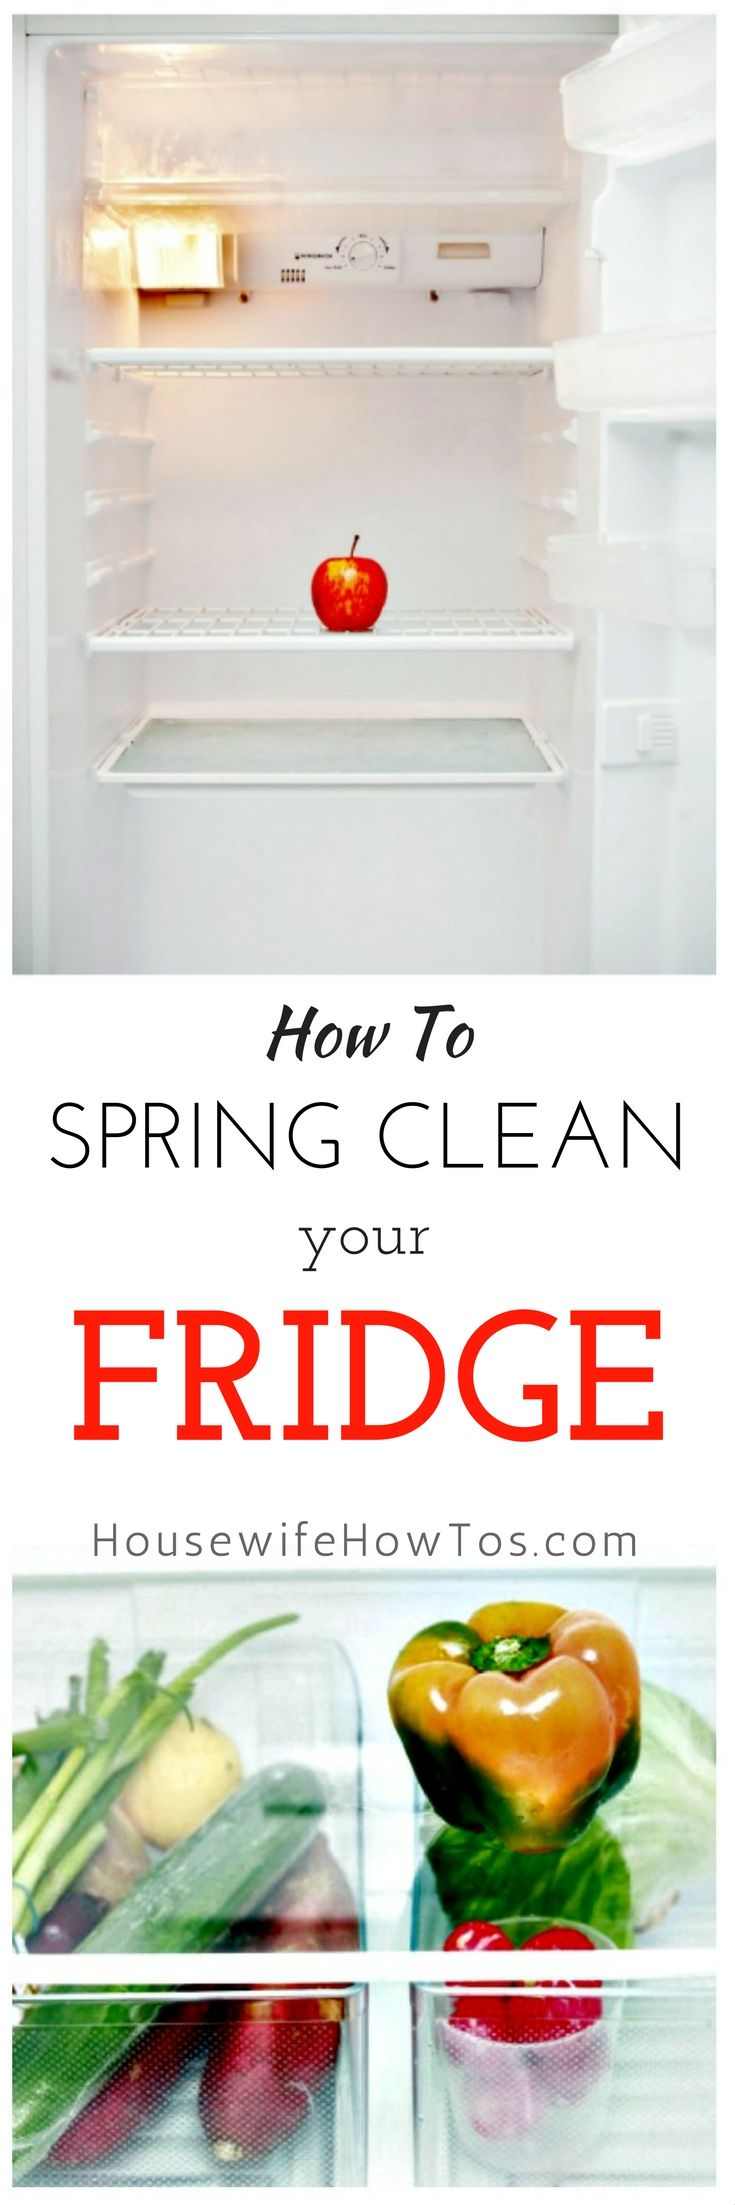 How To Spring Clean A Refrigerator - So clean and it runs better now, too!